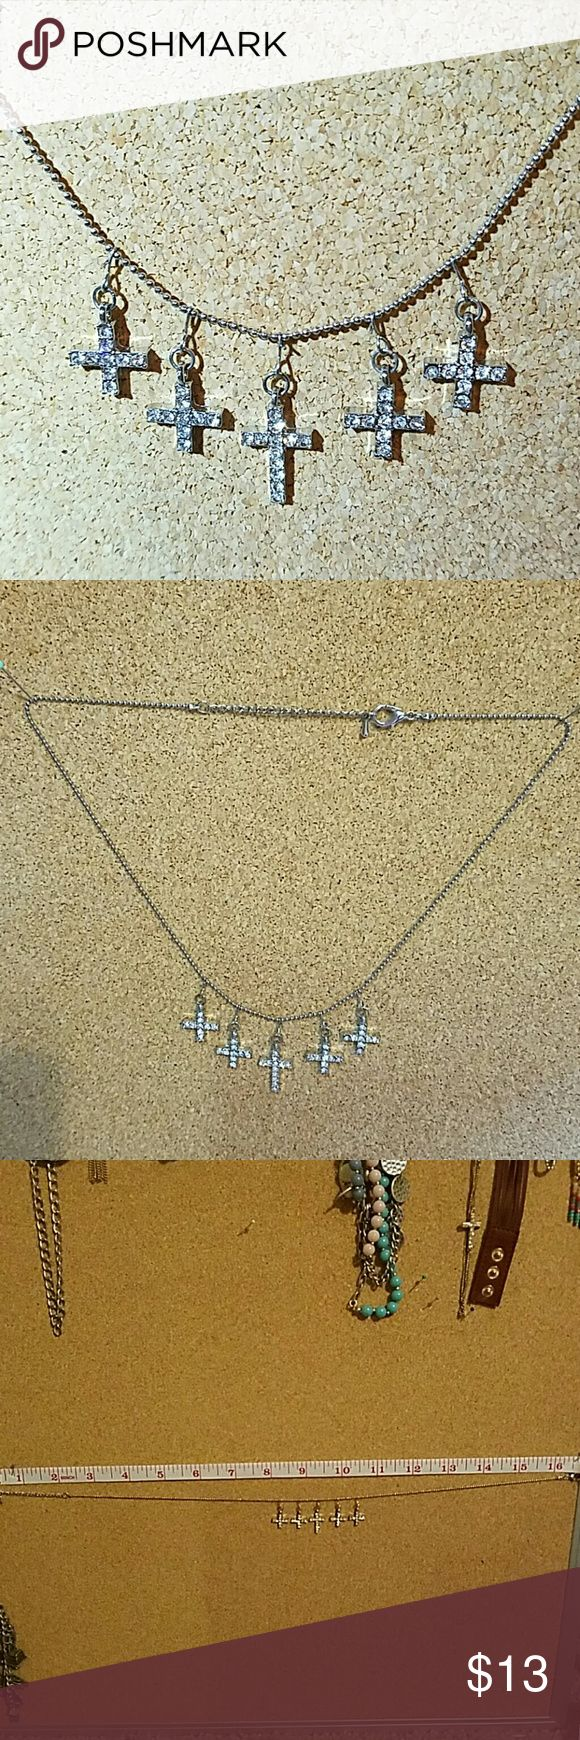 "Silvertone rhinestone 5 crosses necklace Very pretty and dainty with a lot of sparkle! On the small side, could either be a childs necklace or a short womens. Measures 15"" - 17"" in length. Worn once, no missing stones or discoloration. none Jewelry Necklaces"